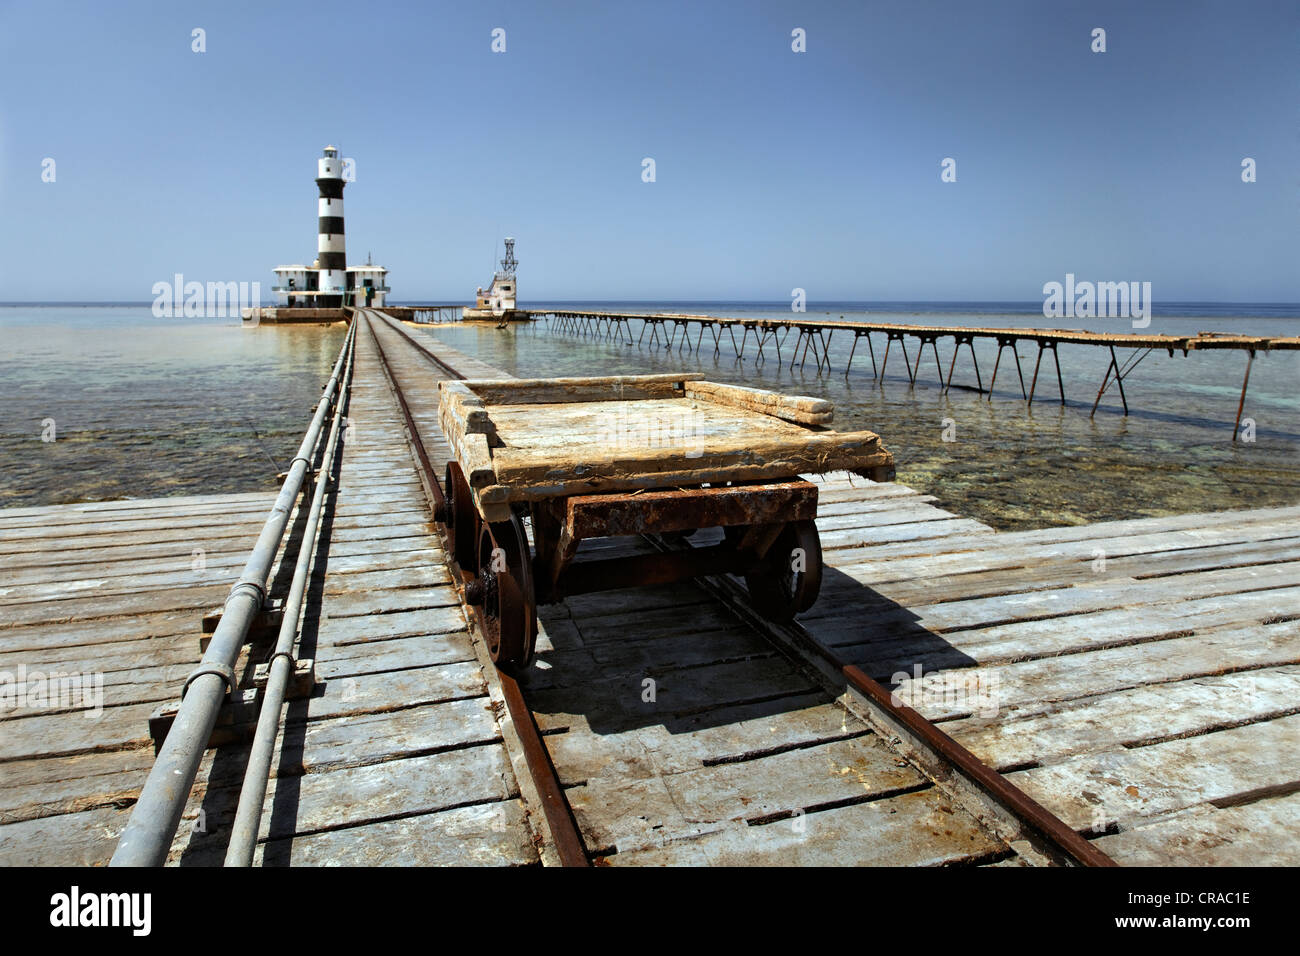 Trolley, rail car and rails, lighthouse with adjoining building, jetty and reef top, Daedalus Reef, Egypt, Red Sea, - Stock Image